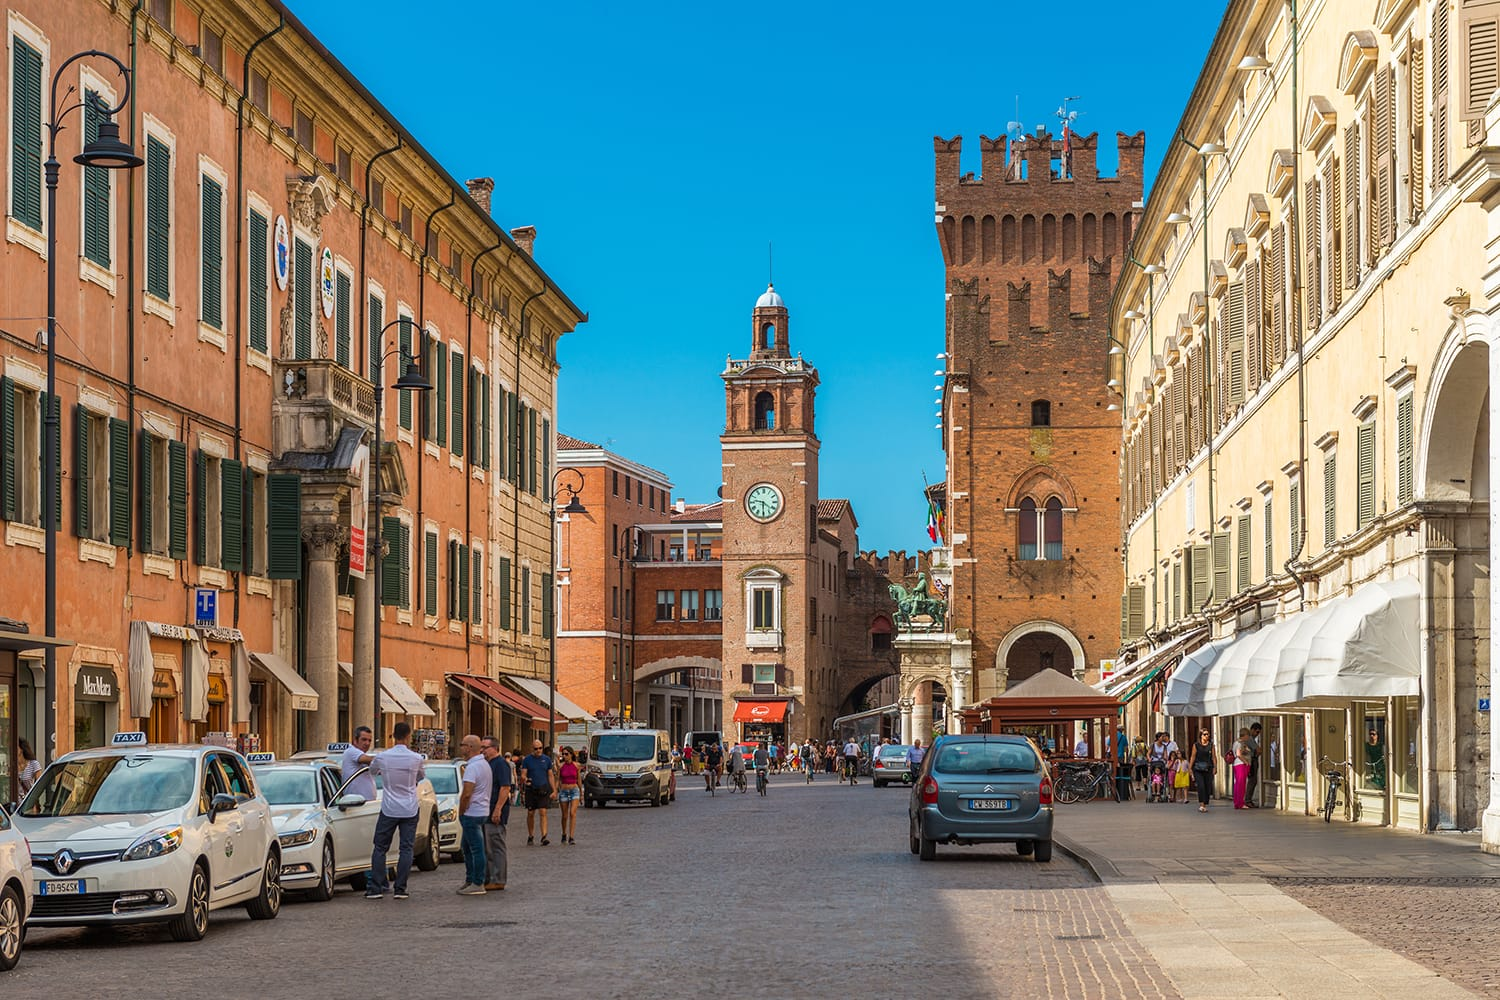 Central street of Ferrara. Taxi cabs and drivers near them. People walking in the historical part of the city